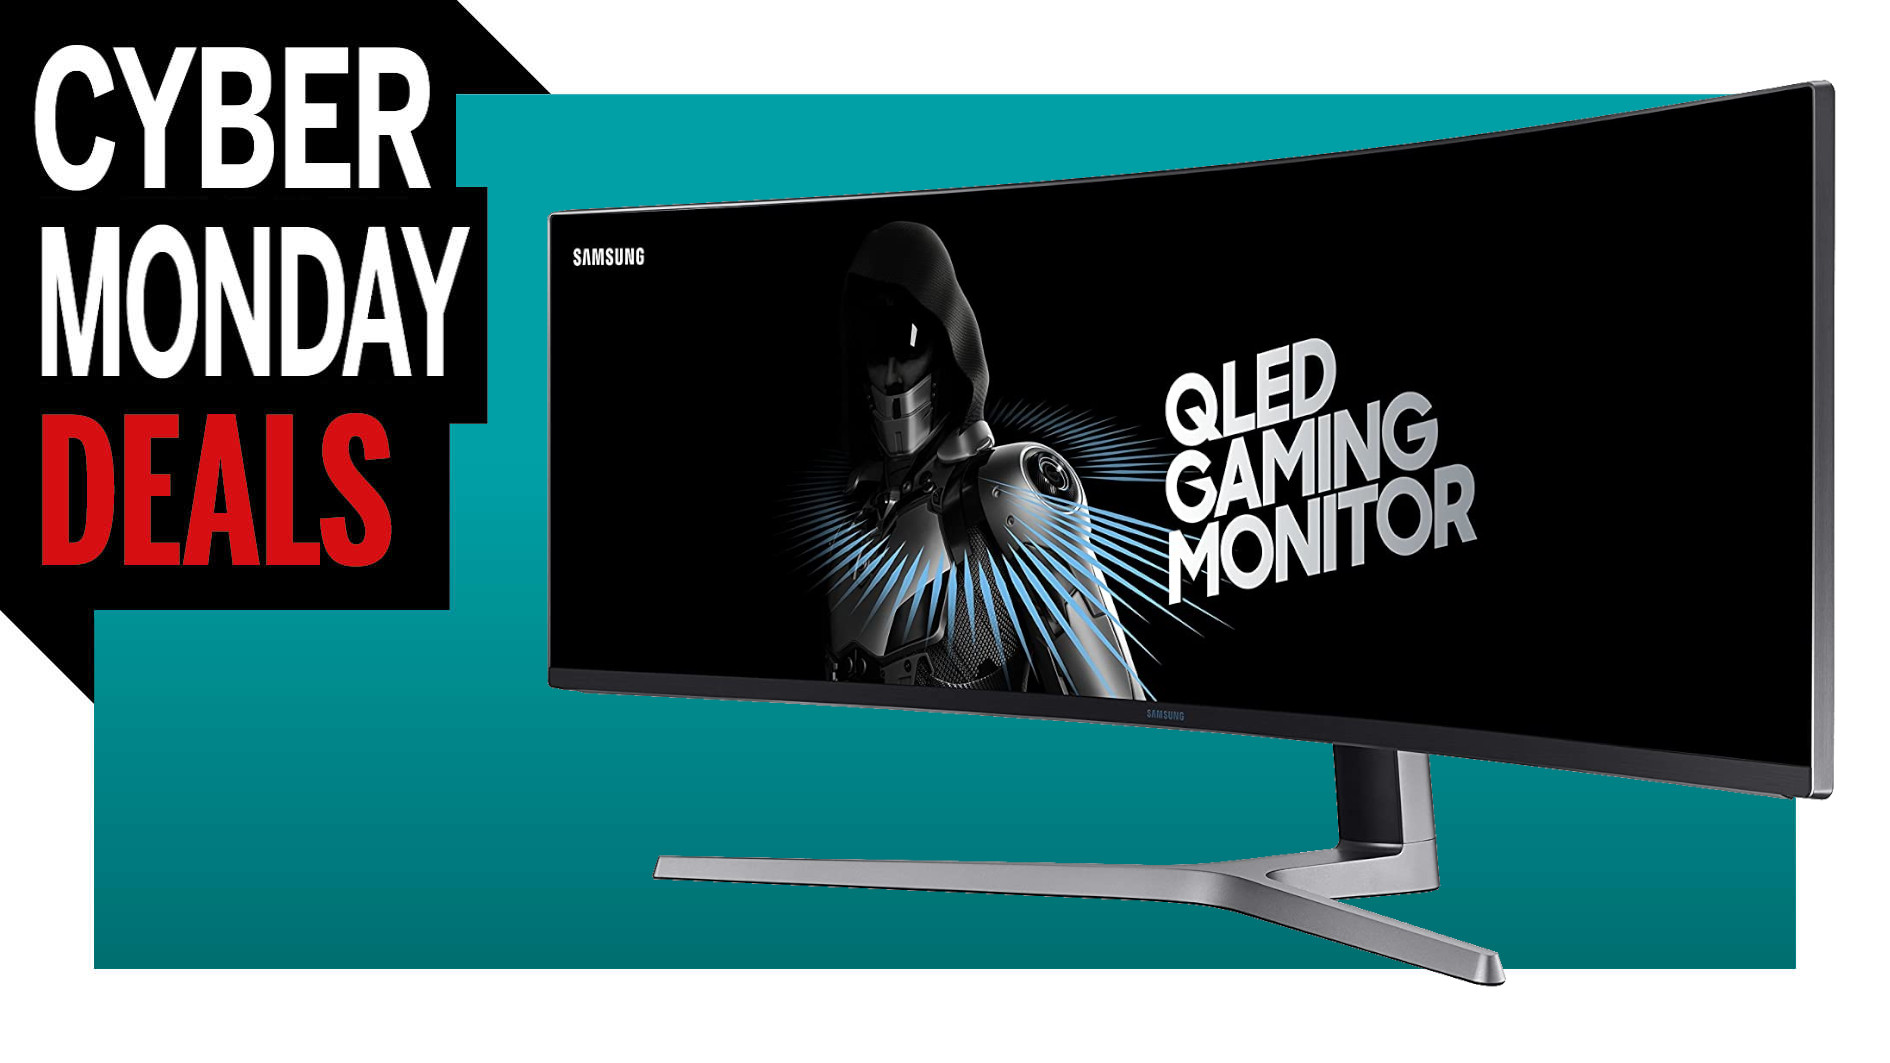 Our favorite curvy gaming monitor, the Samsung CHG90, is $350 off on Amazon